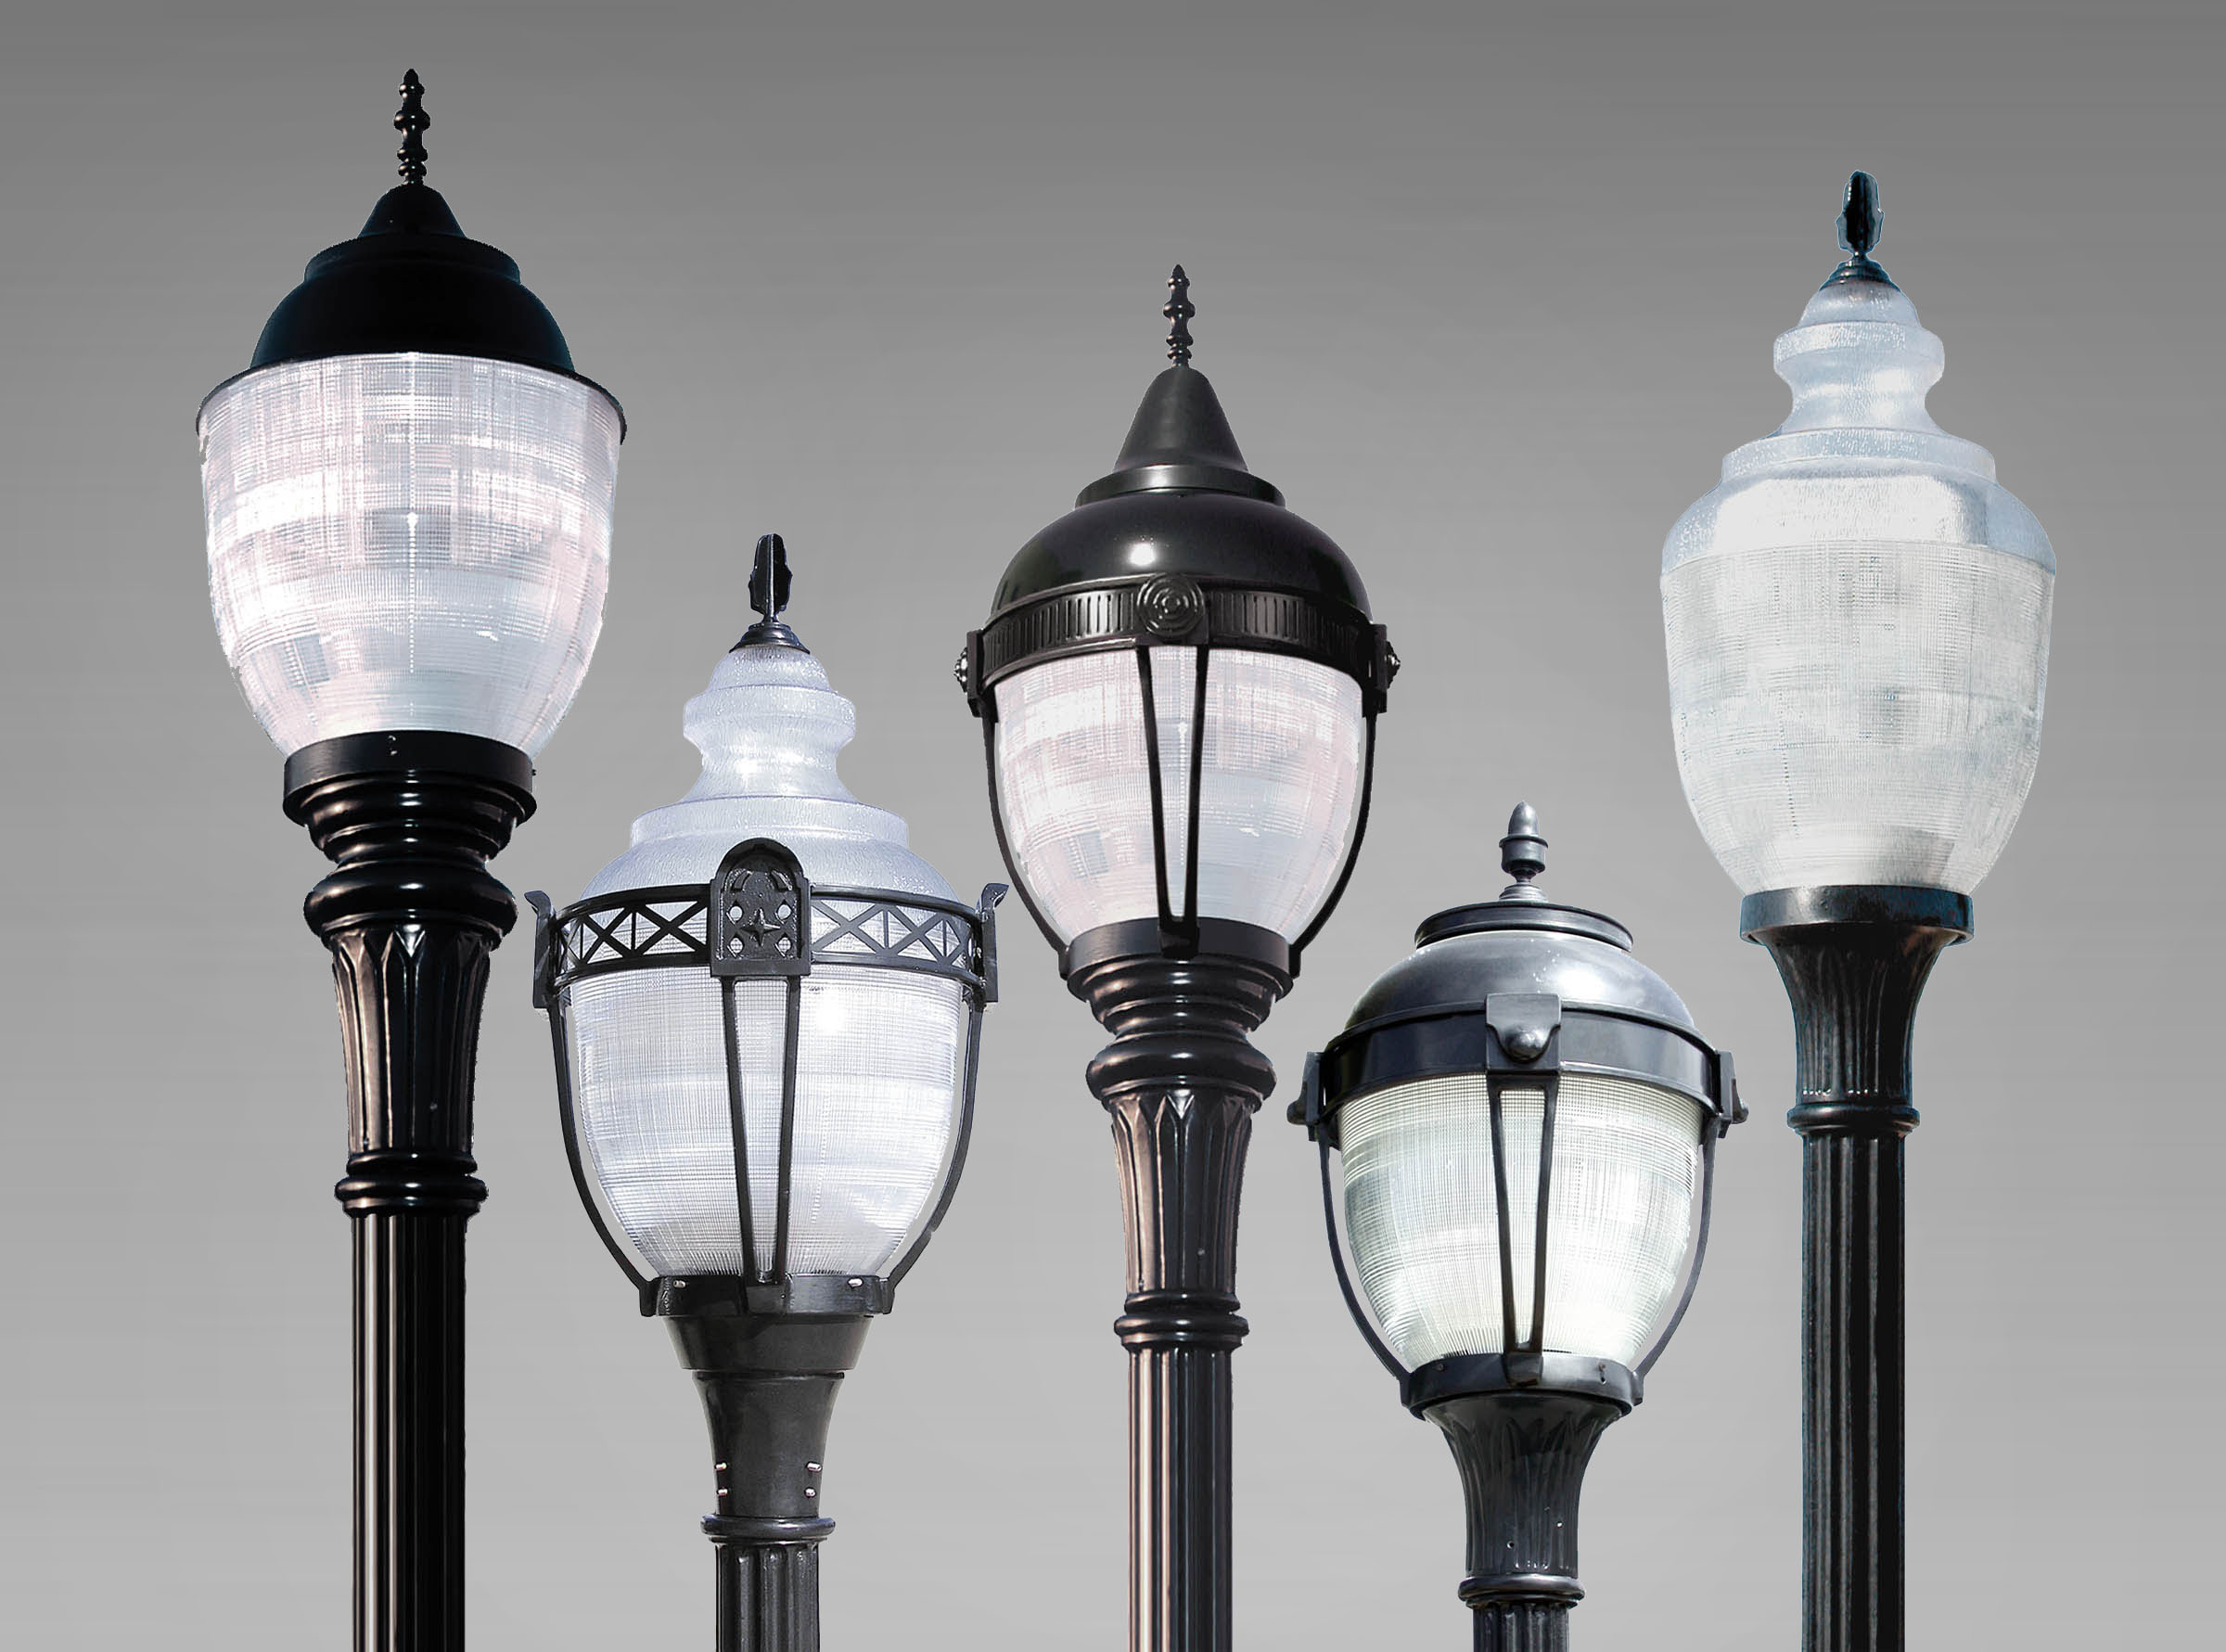 Rg led series prismatic acorn luminaires